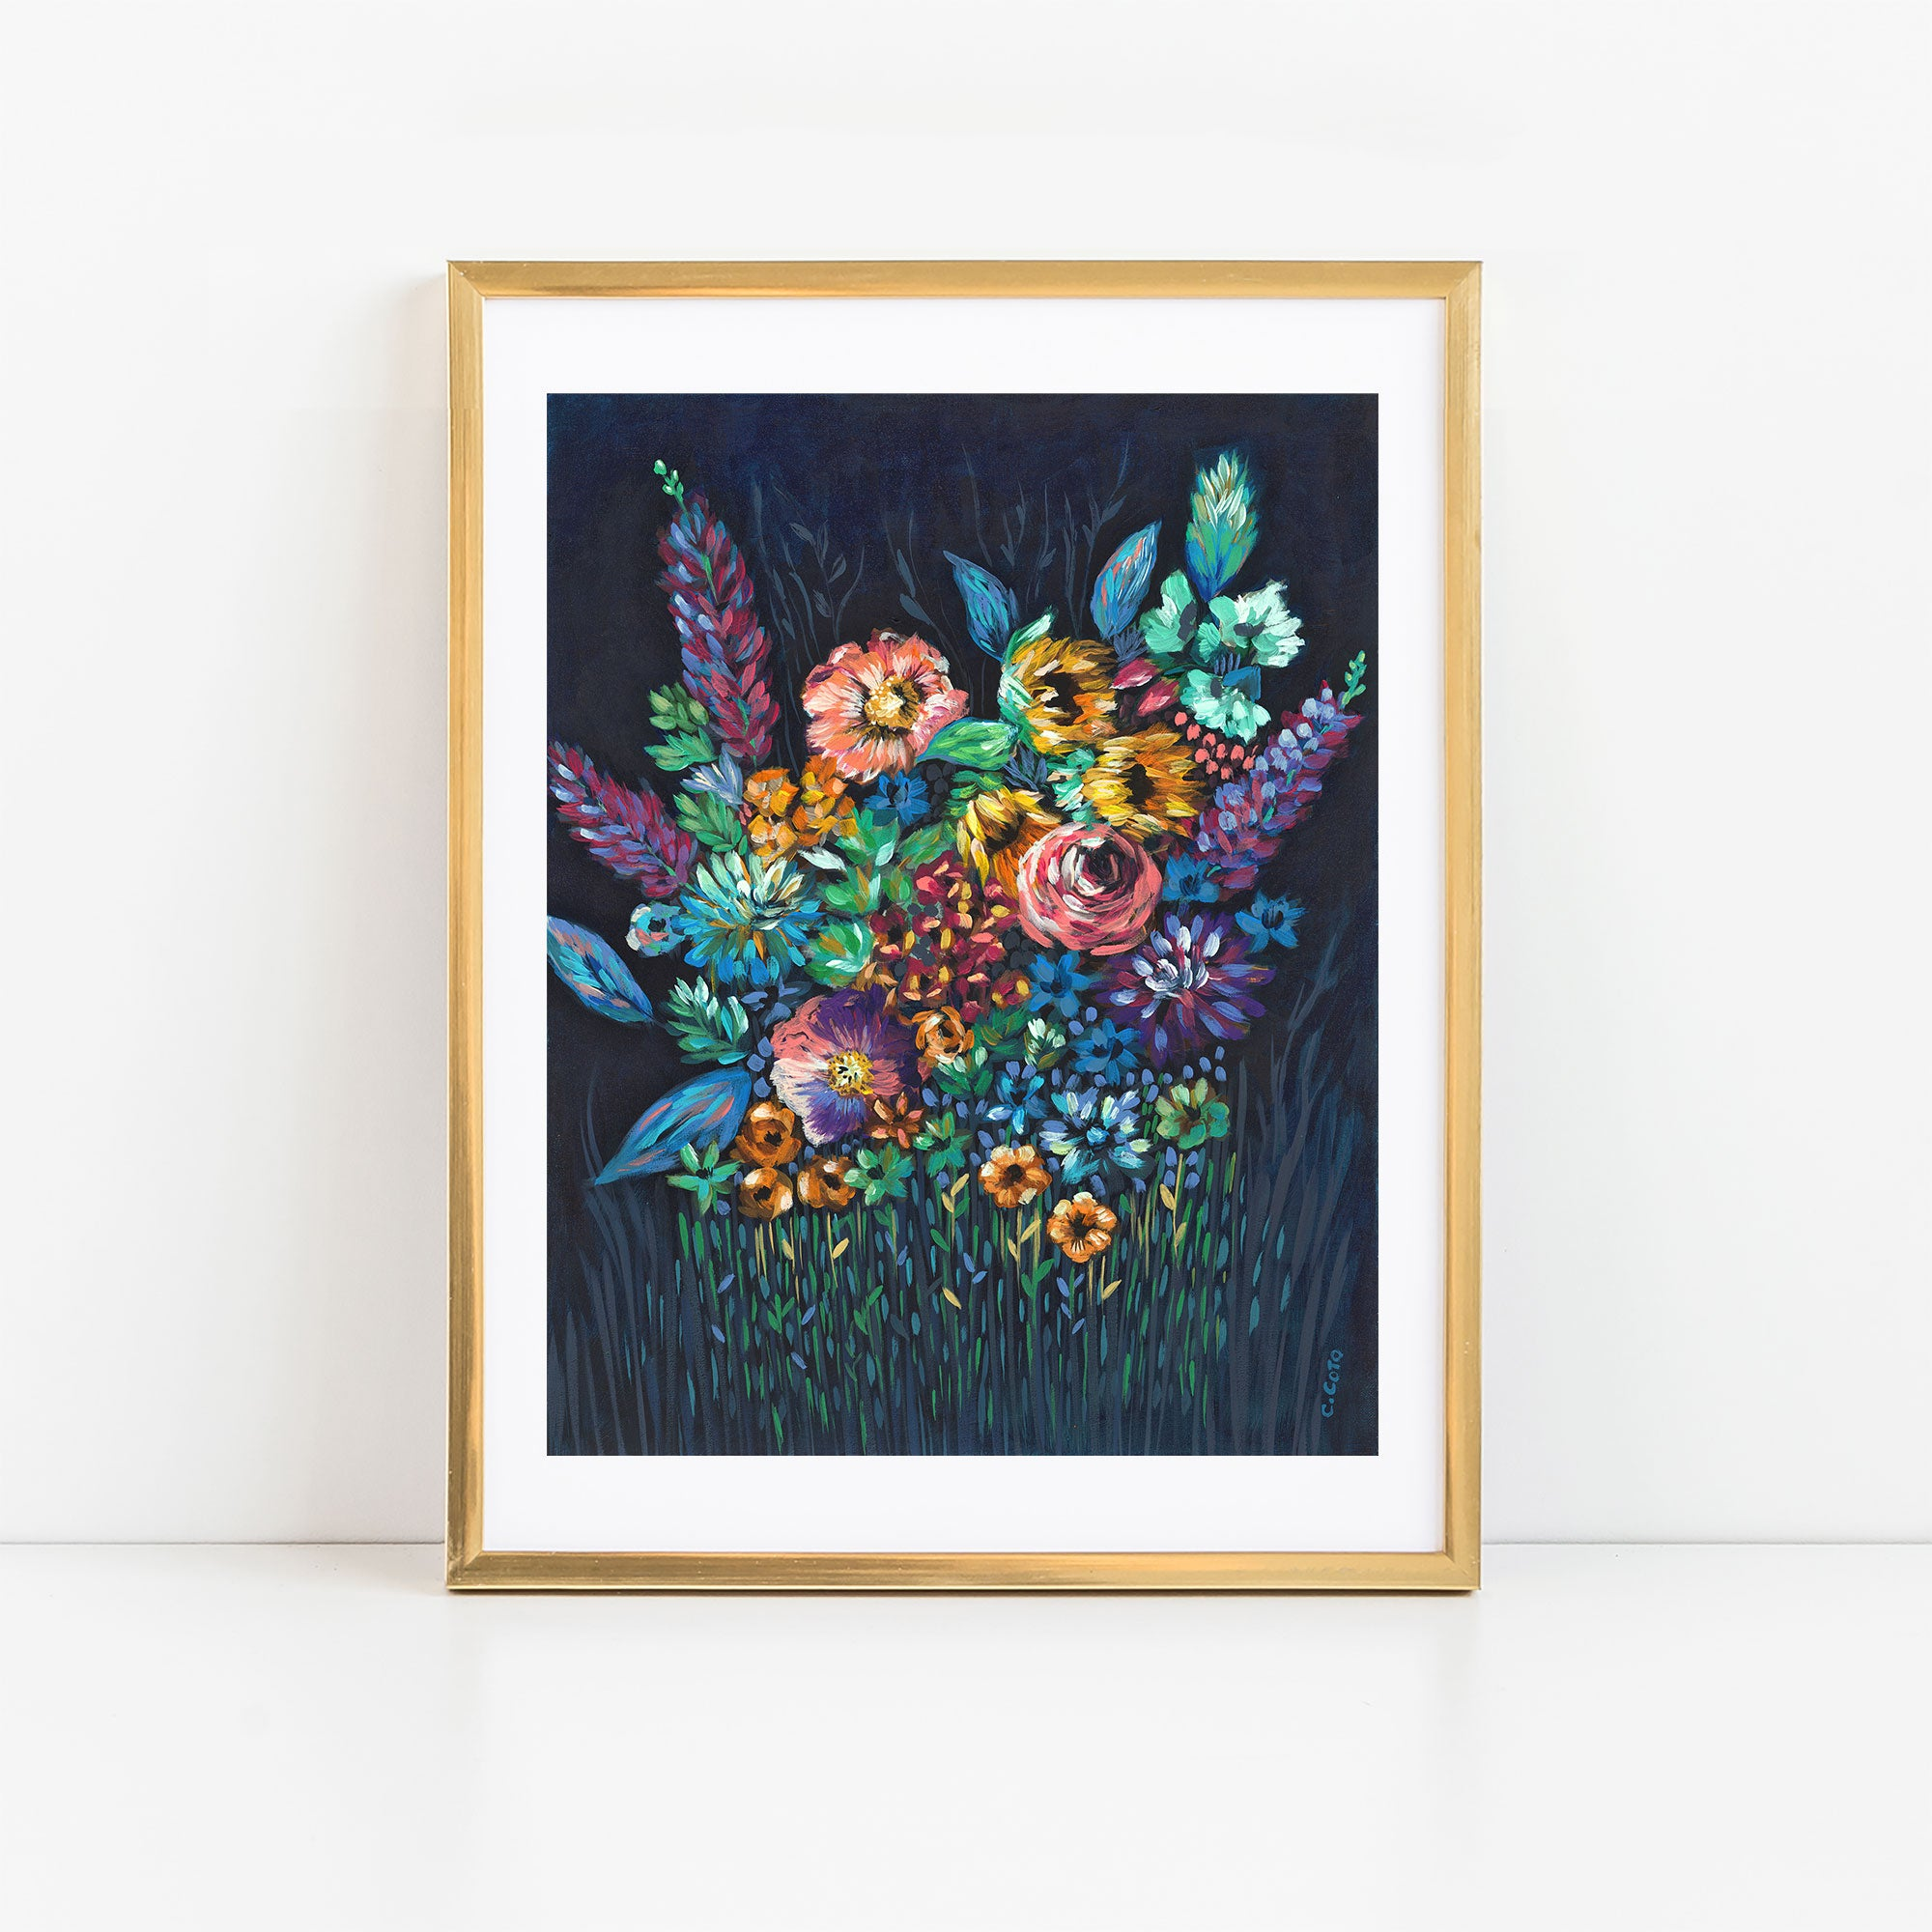 SPECIAL EDITION PRINT - Night Floral